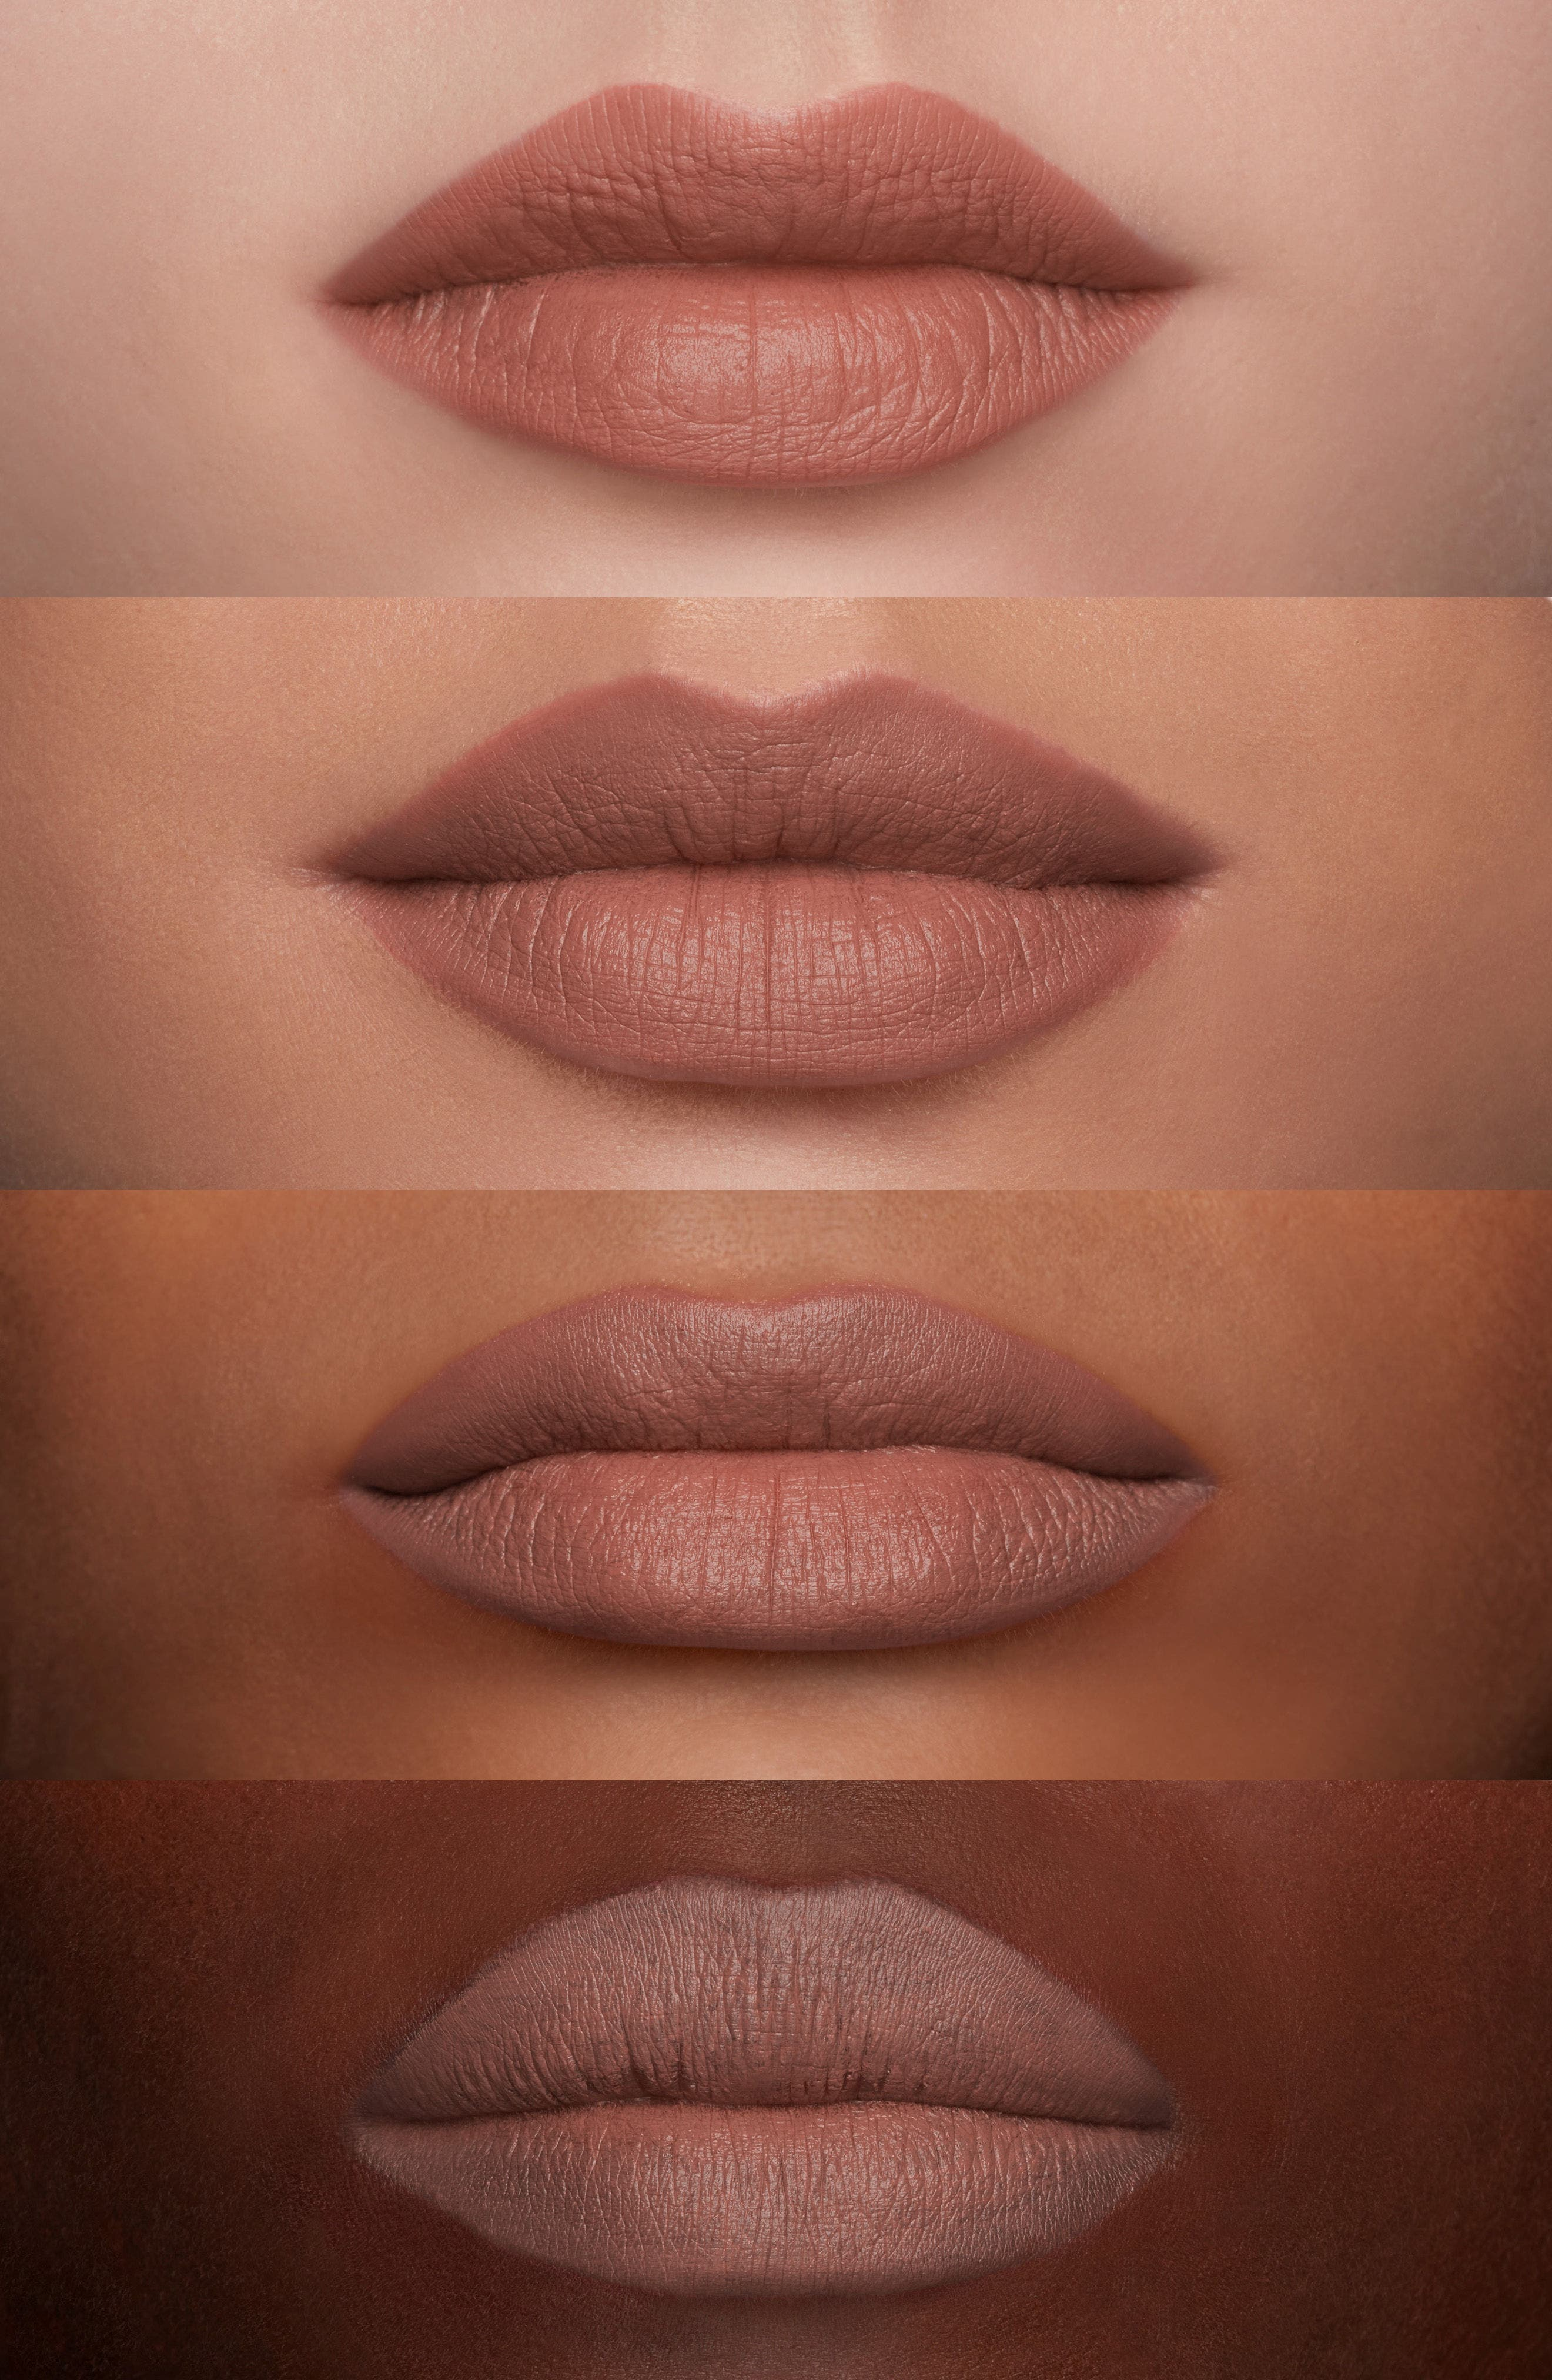 Boys & Girls Lip Color - The Girls,                             Alternate thumbnail 2, color,                             KATHERINE/ ULTRA-RICH